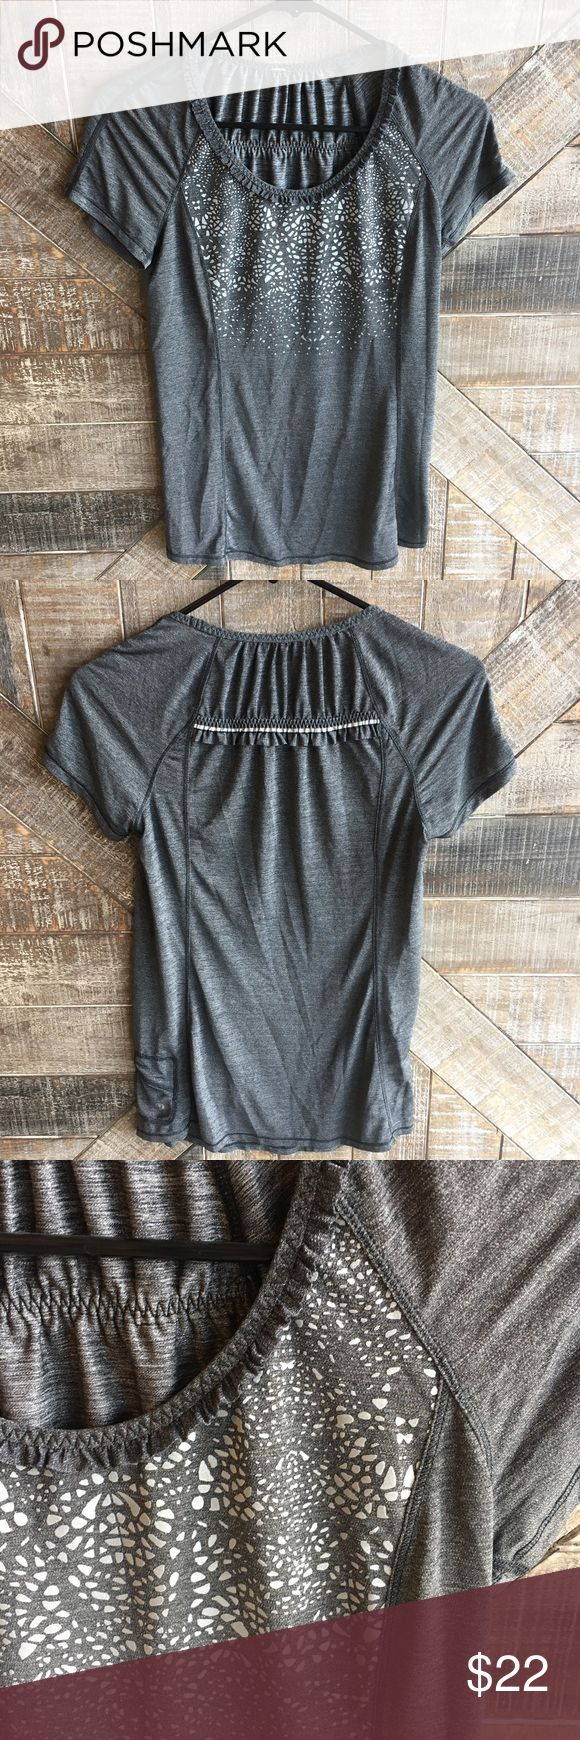 Gray Lululemon Ruffle Short Sleeve Top Gray Lululemon Short Sleeve Top with reflective Ruffle detail on the back. In good used condition, tags have been removed. Womens size 4 (located in side pocket). No trades, reasonable offers considered through the offer button. lululemon athletica Tops Tees - Short Sleeve